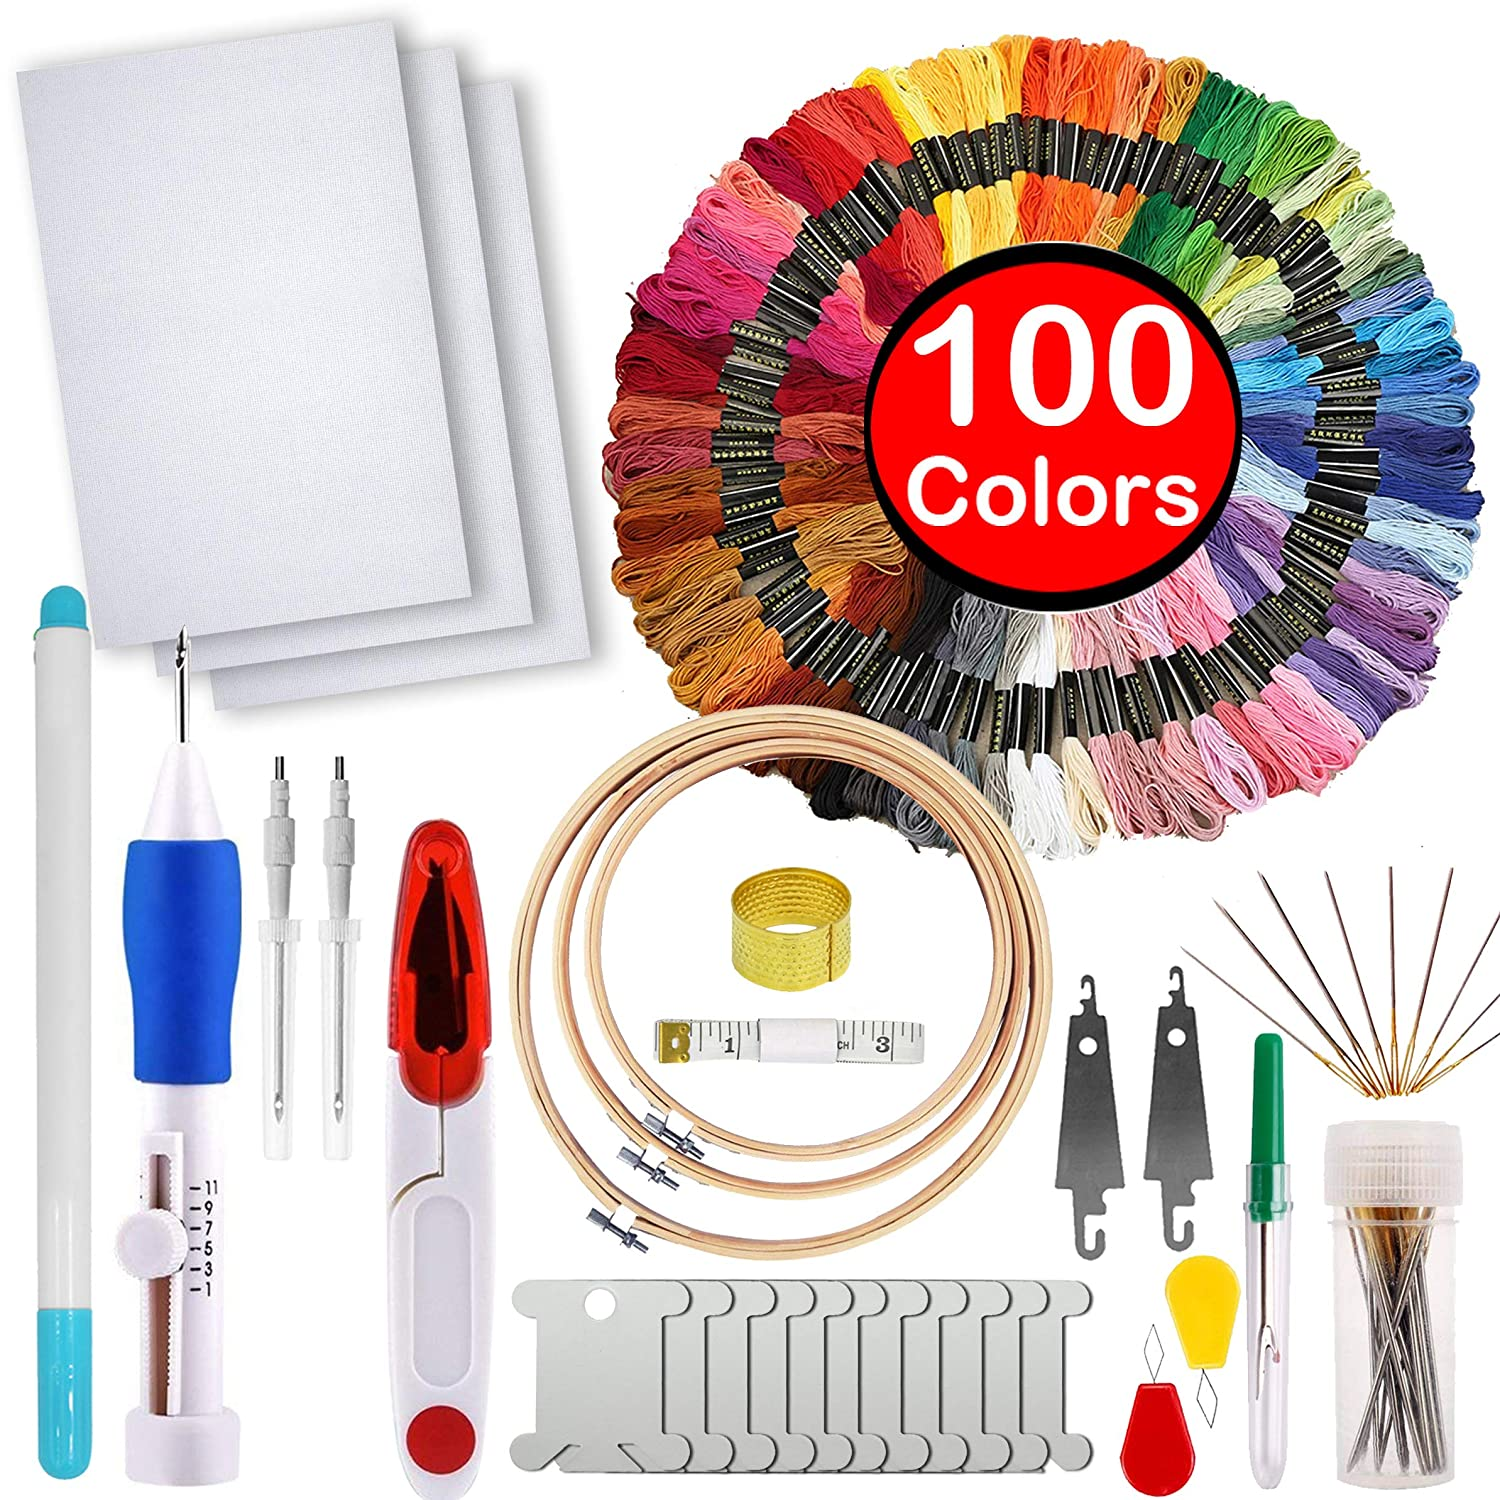 Full Range of Magic Embroidery Pen Punch Needle,3 Pieces Bamboo Embroidery Hoops,100 Color Threads and Cross Stitch Tool Kit, 2 Pieces 12 by 18-Inch 14 Count Classic Reserve Aida MDPQT